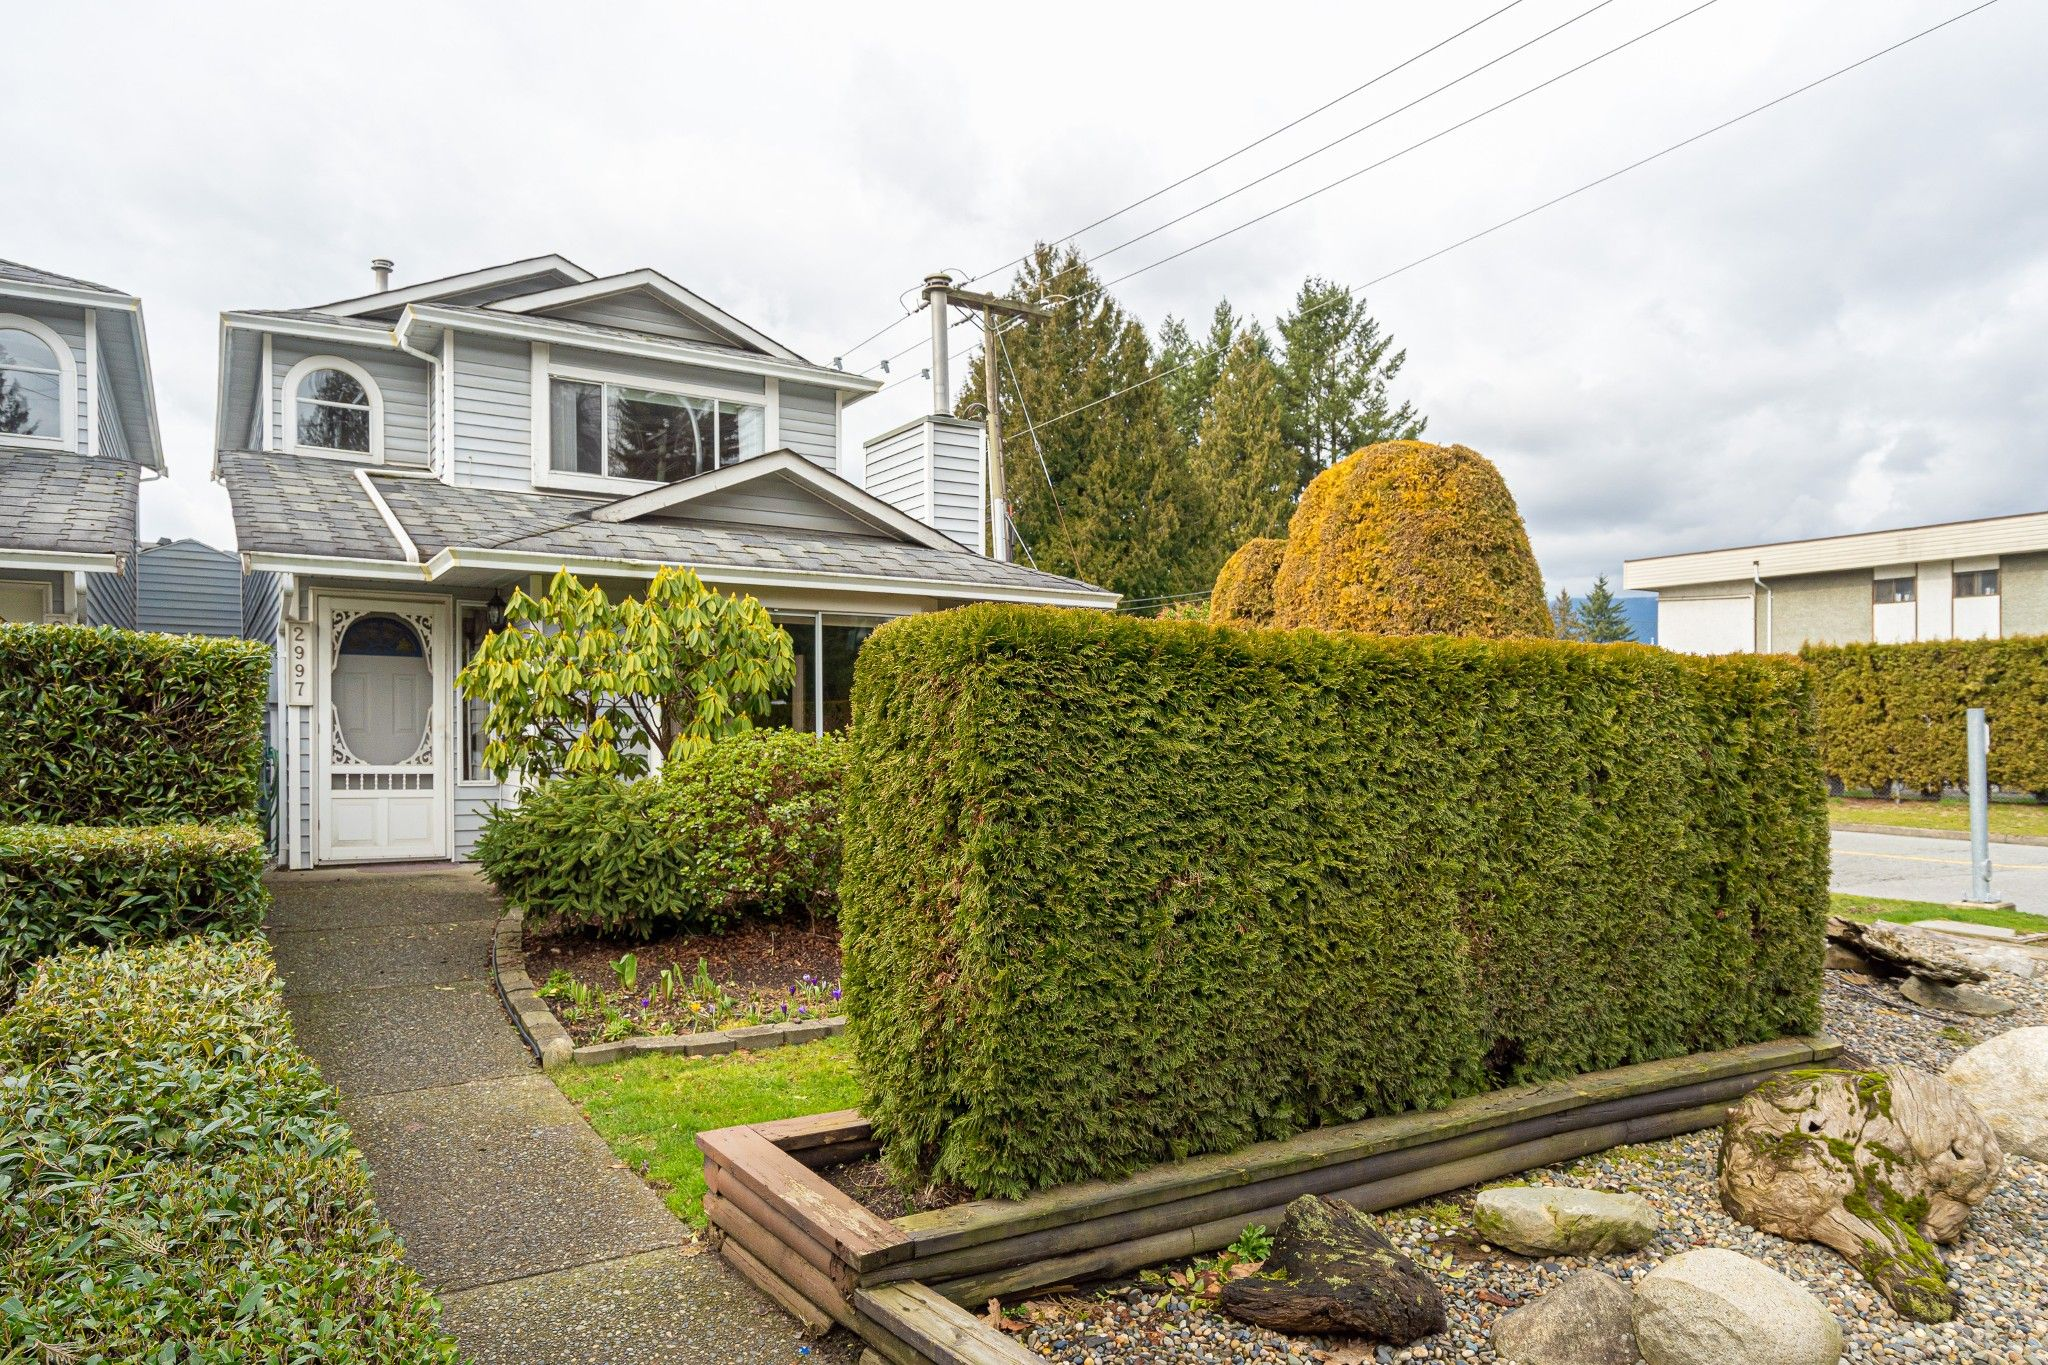 Main Photo: 2997 COAST MERIDIAN Road in Port Coquitlam: Glenwood PQ Townhouse for sale : MLS®# R2440834